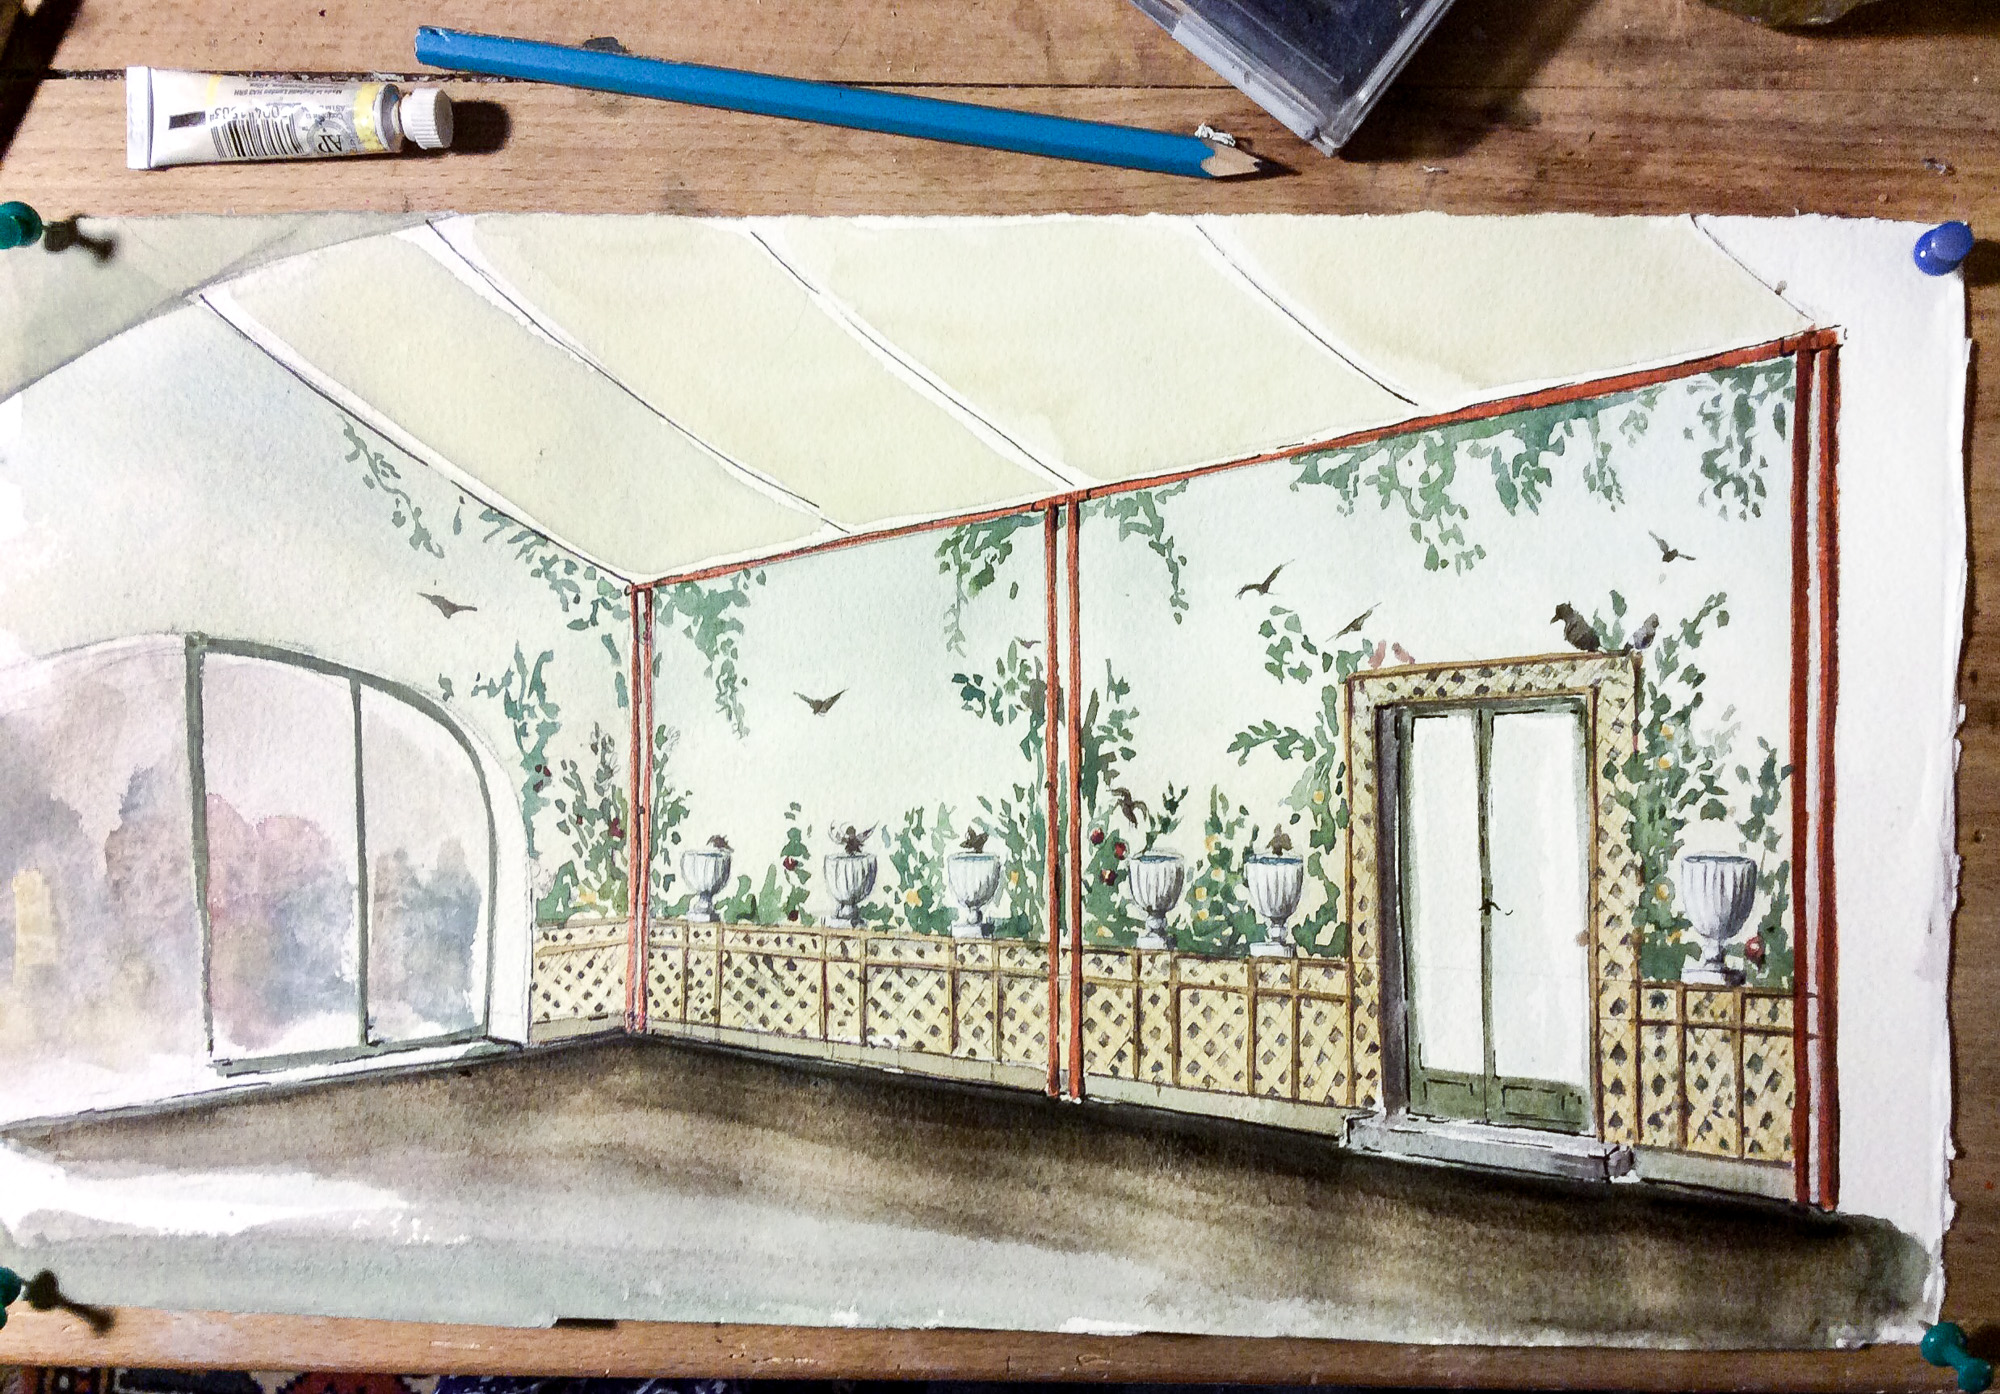 Sketch cane pergola - Alexander Hamilton - Decorative Artist - London